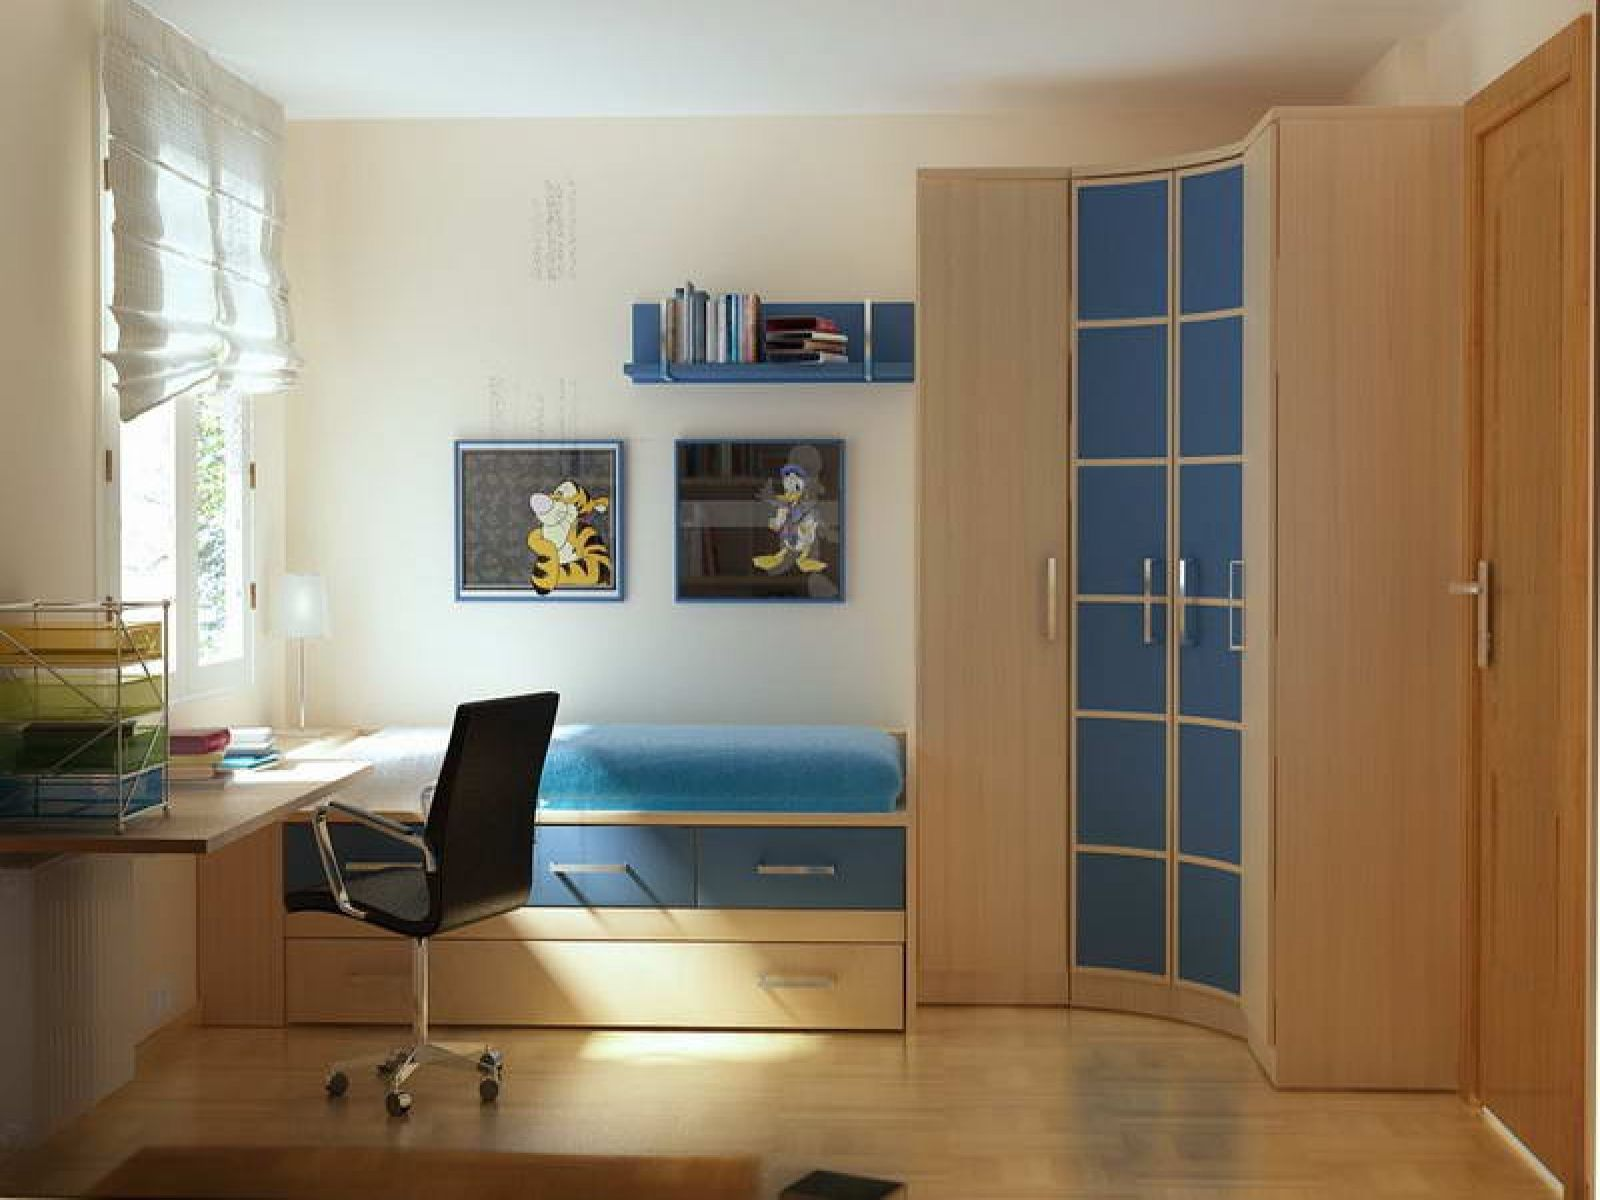 Bedroom Design For Small Spaces Roomideasbedroomideassmallbedroomideaswithkingbedsmall